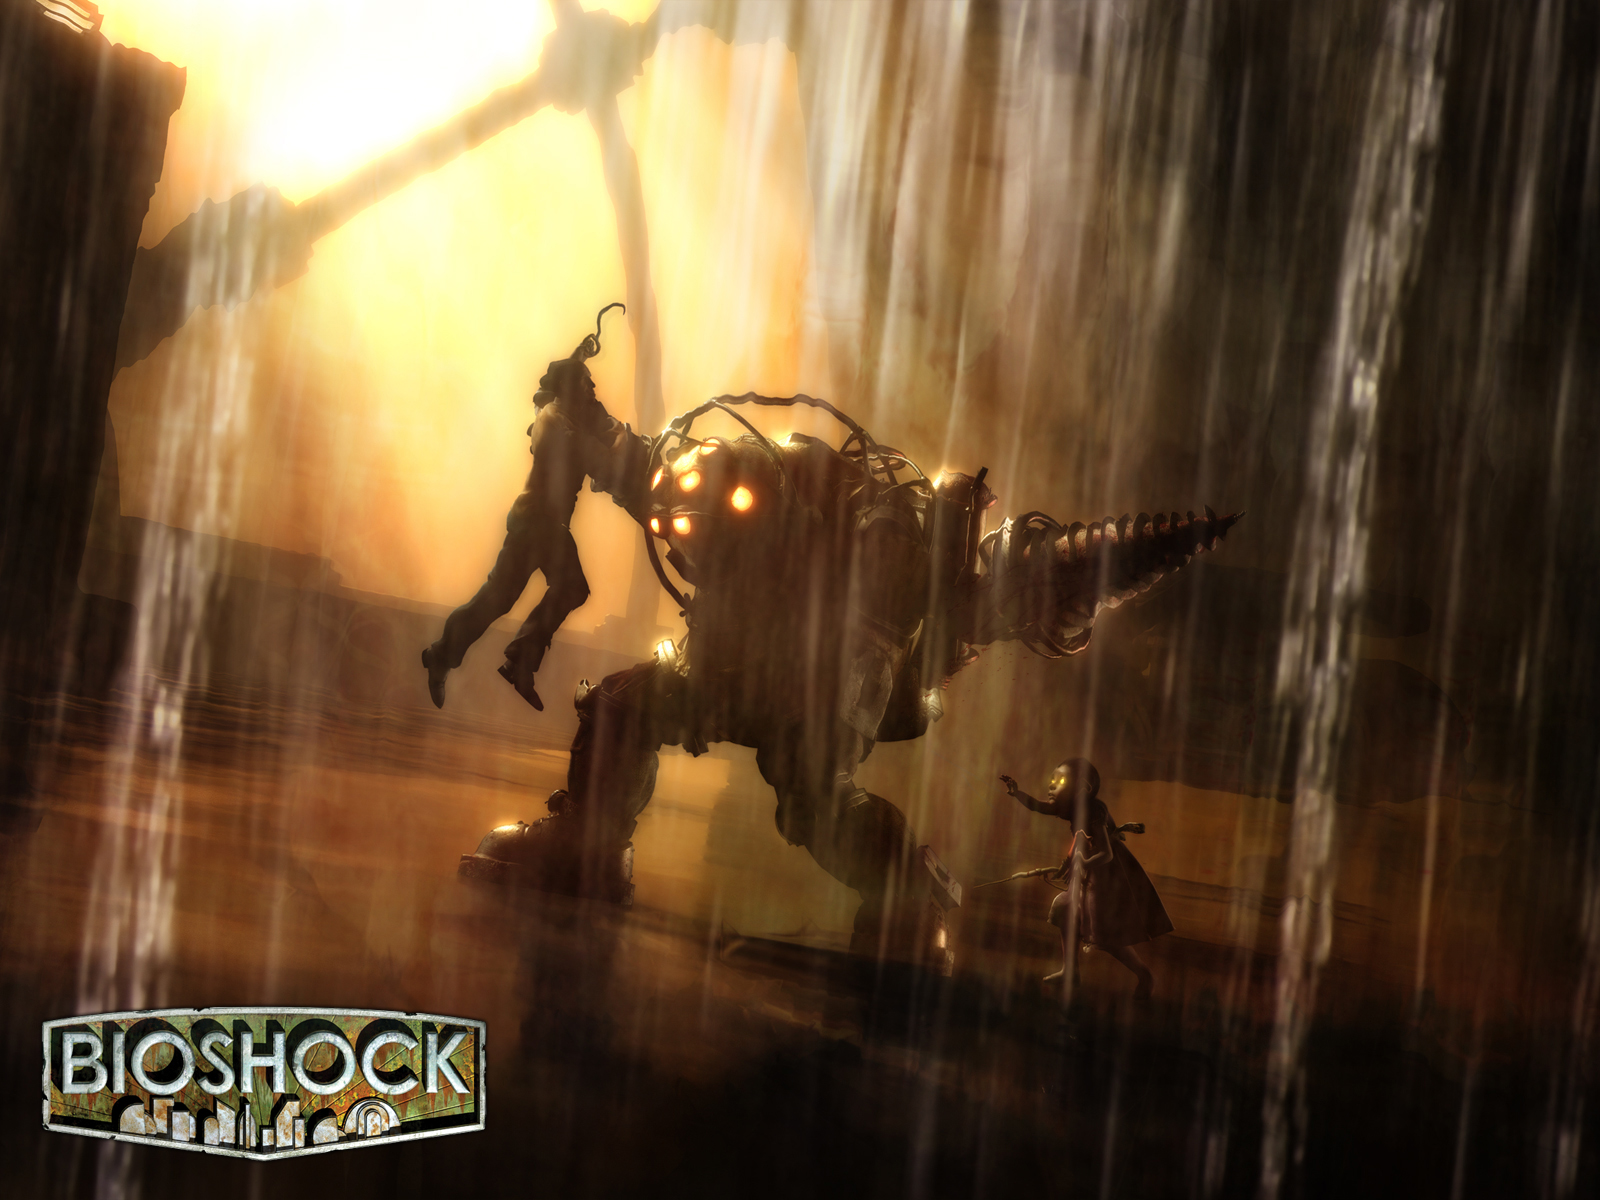 http://2.bp.blogspot.com/-hqTE9CpzJkA/UAOVZSrvNmI/AAAAAAAABDU/YTablrEracQ/s1600/bioshock+bio+shock+big+daddy+wallpaper+background+2k+fps+first+person+shooter+horror.jpg